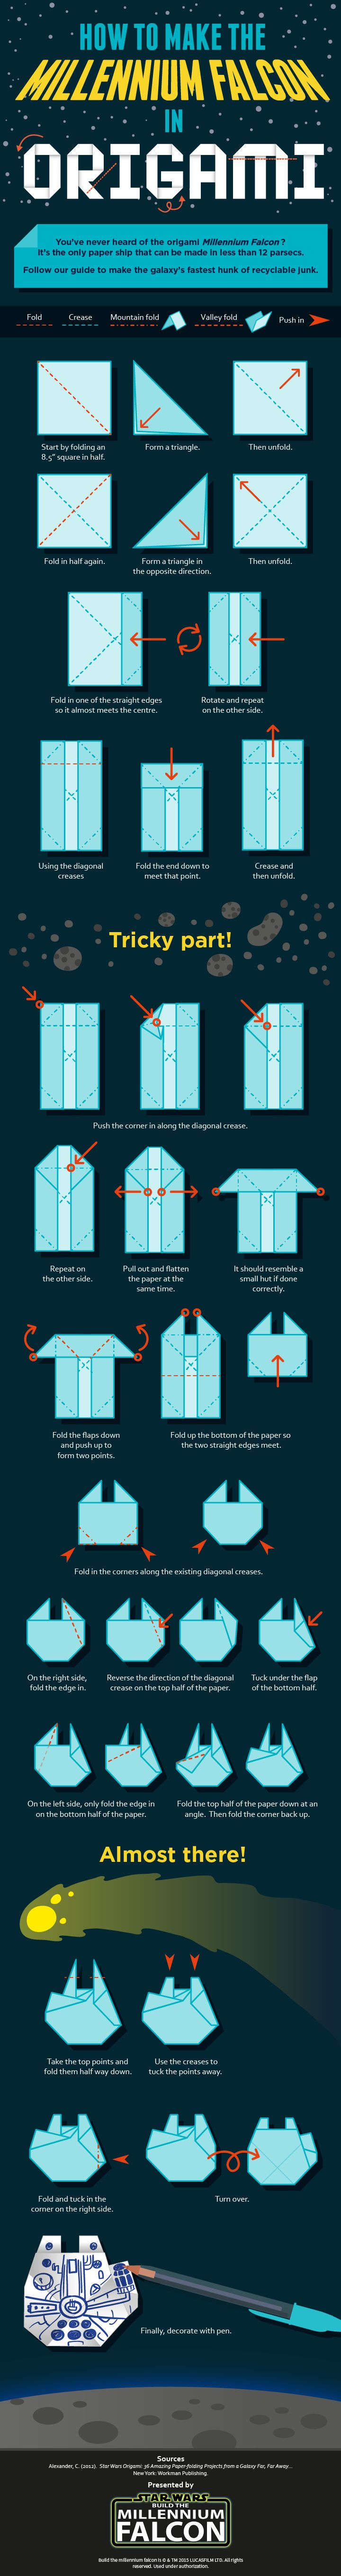 How to Make the Millennium Falcon in Origami #infographic #MillenniumFalcon #StarWars #HowTo